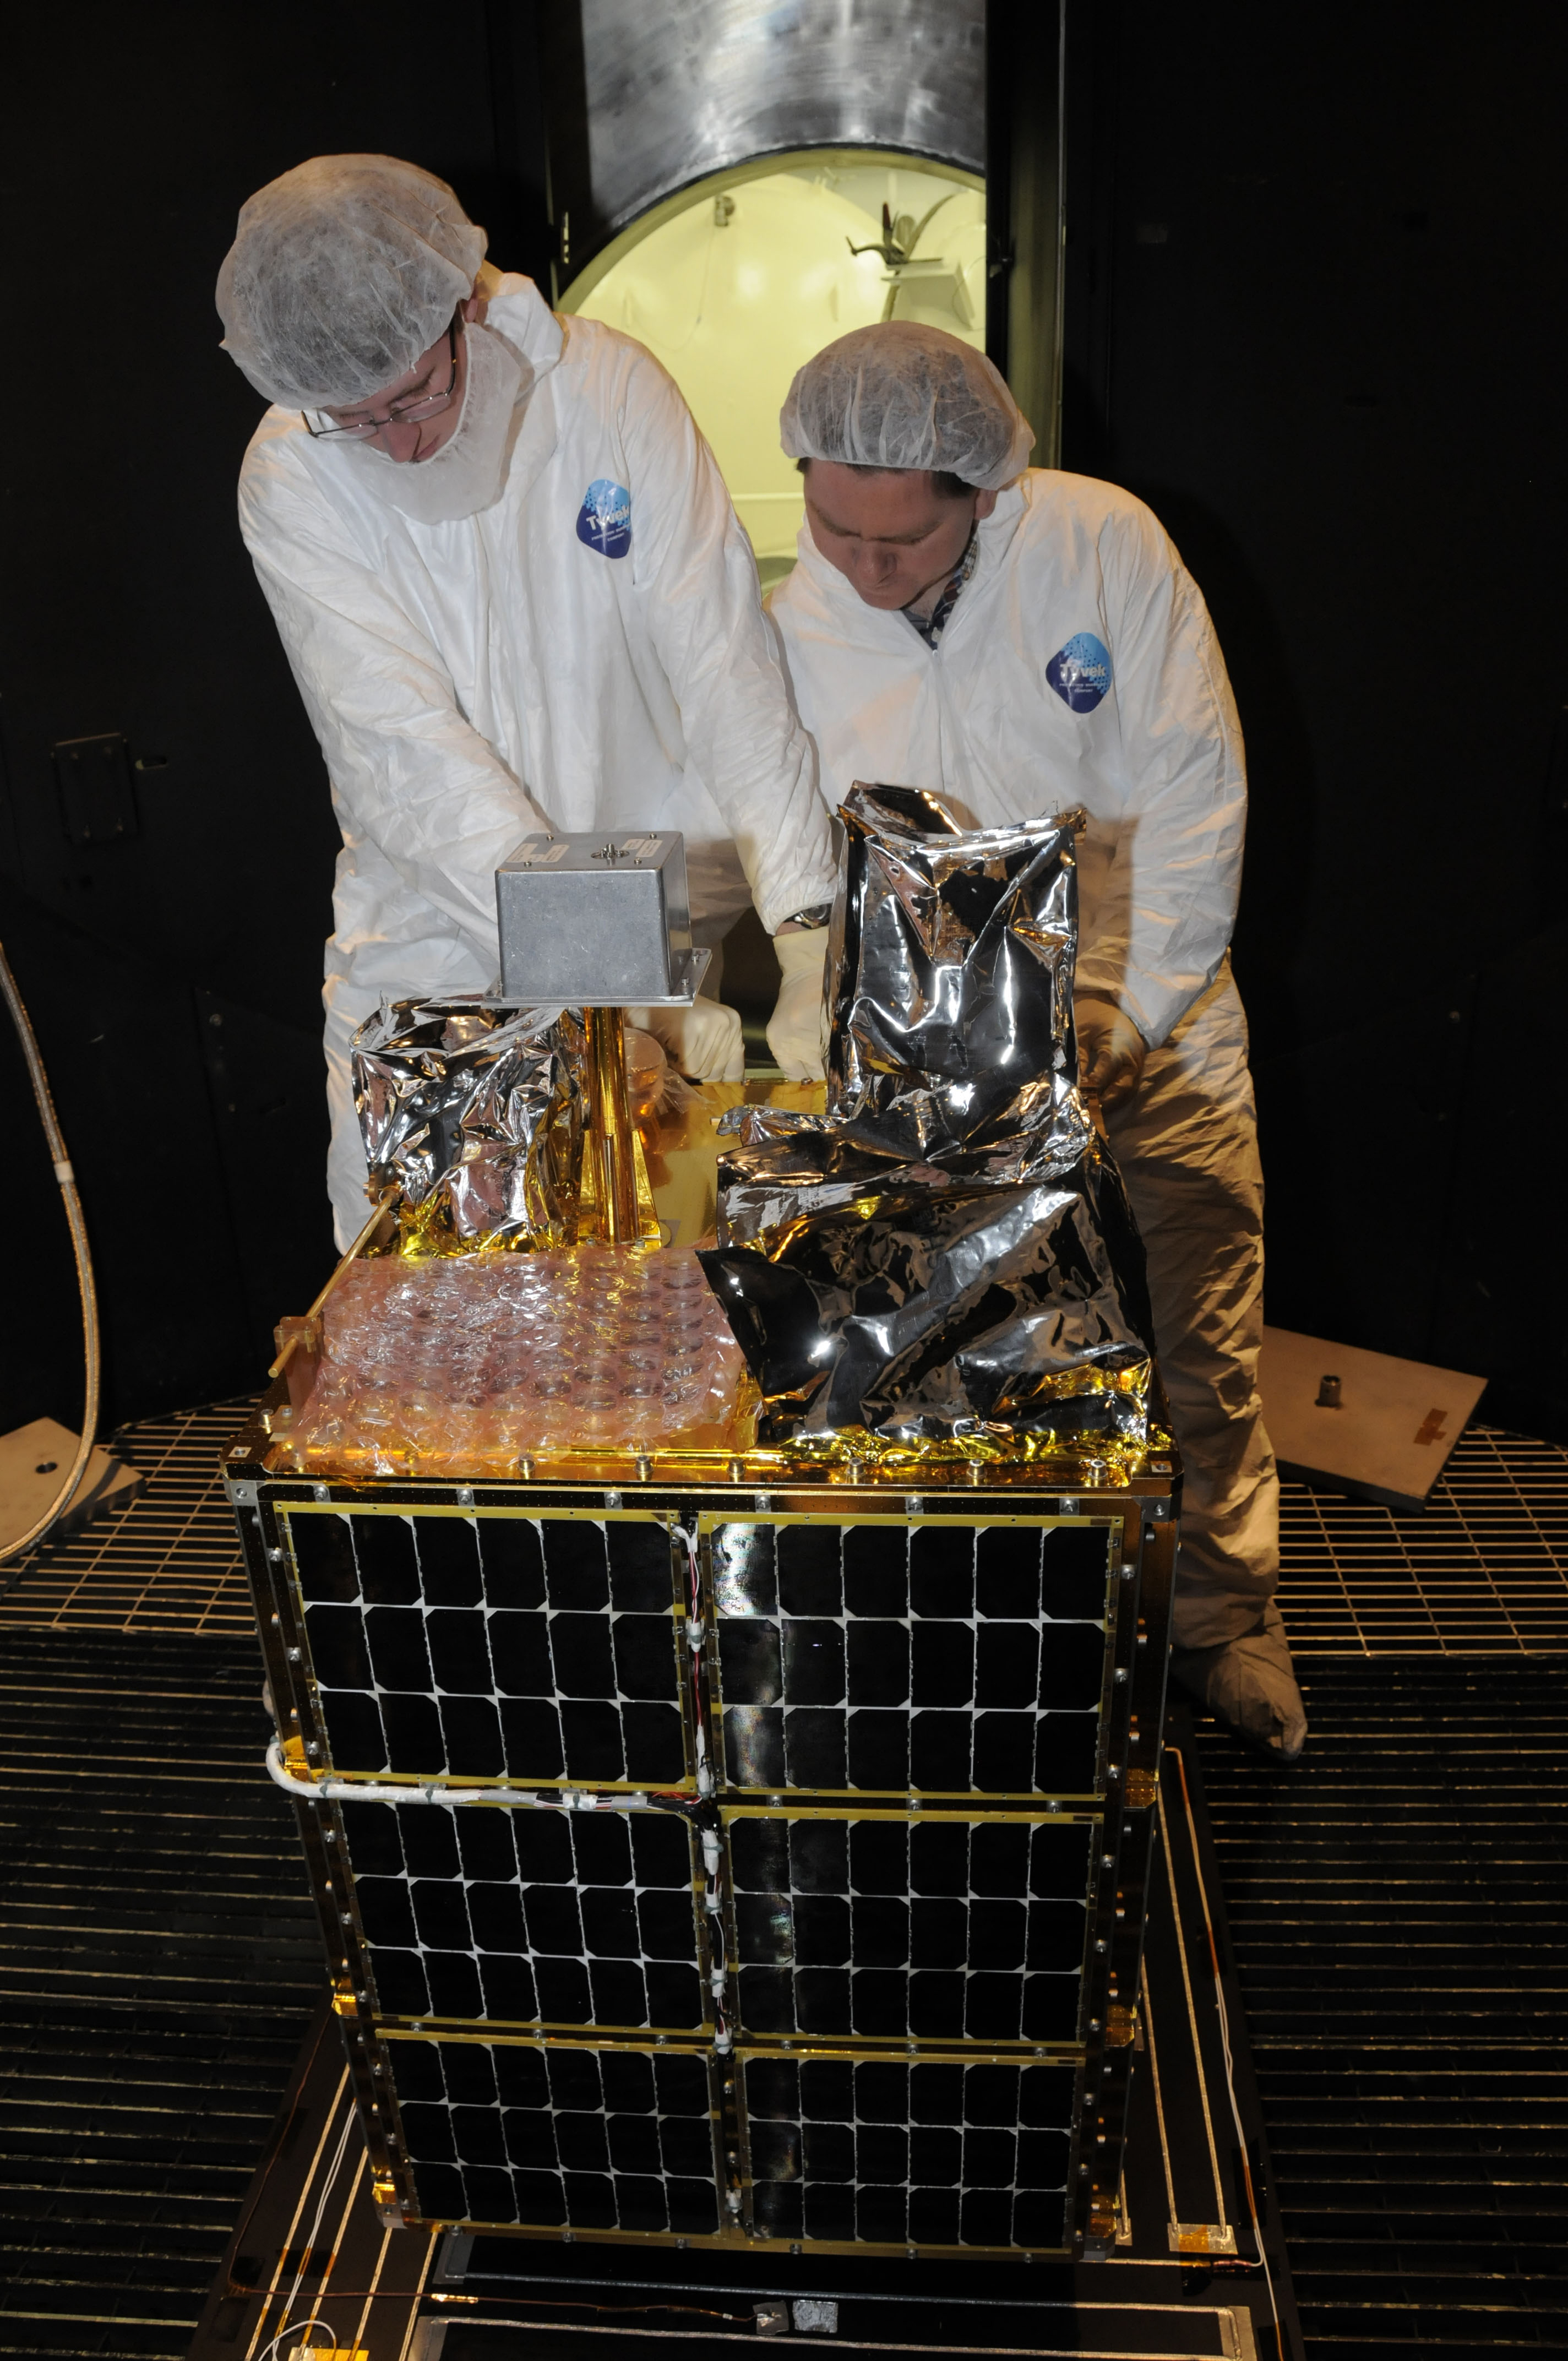 NASA Scientists at Work - Pics about space